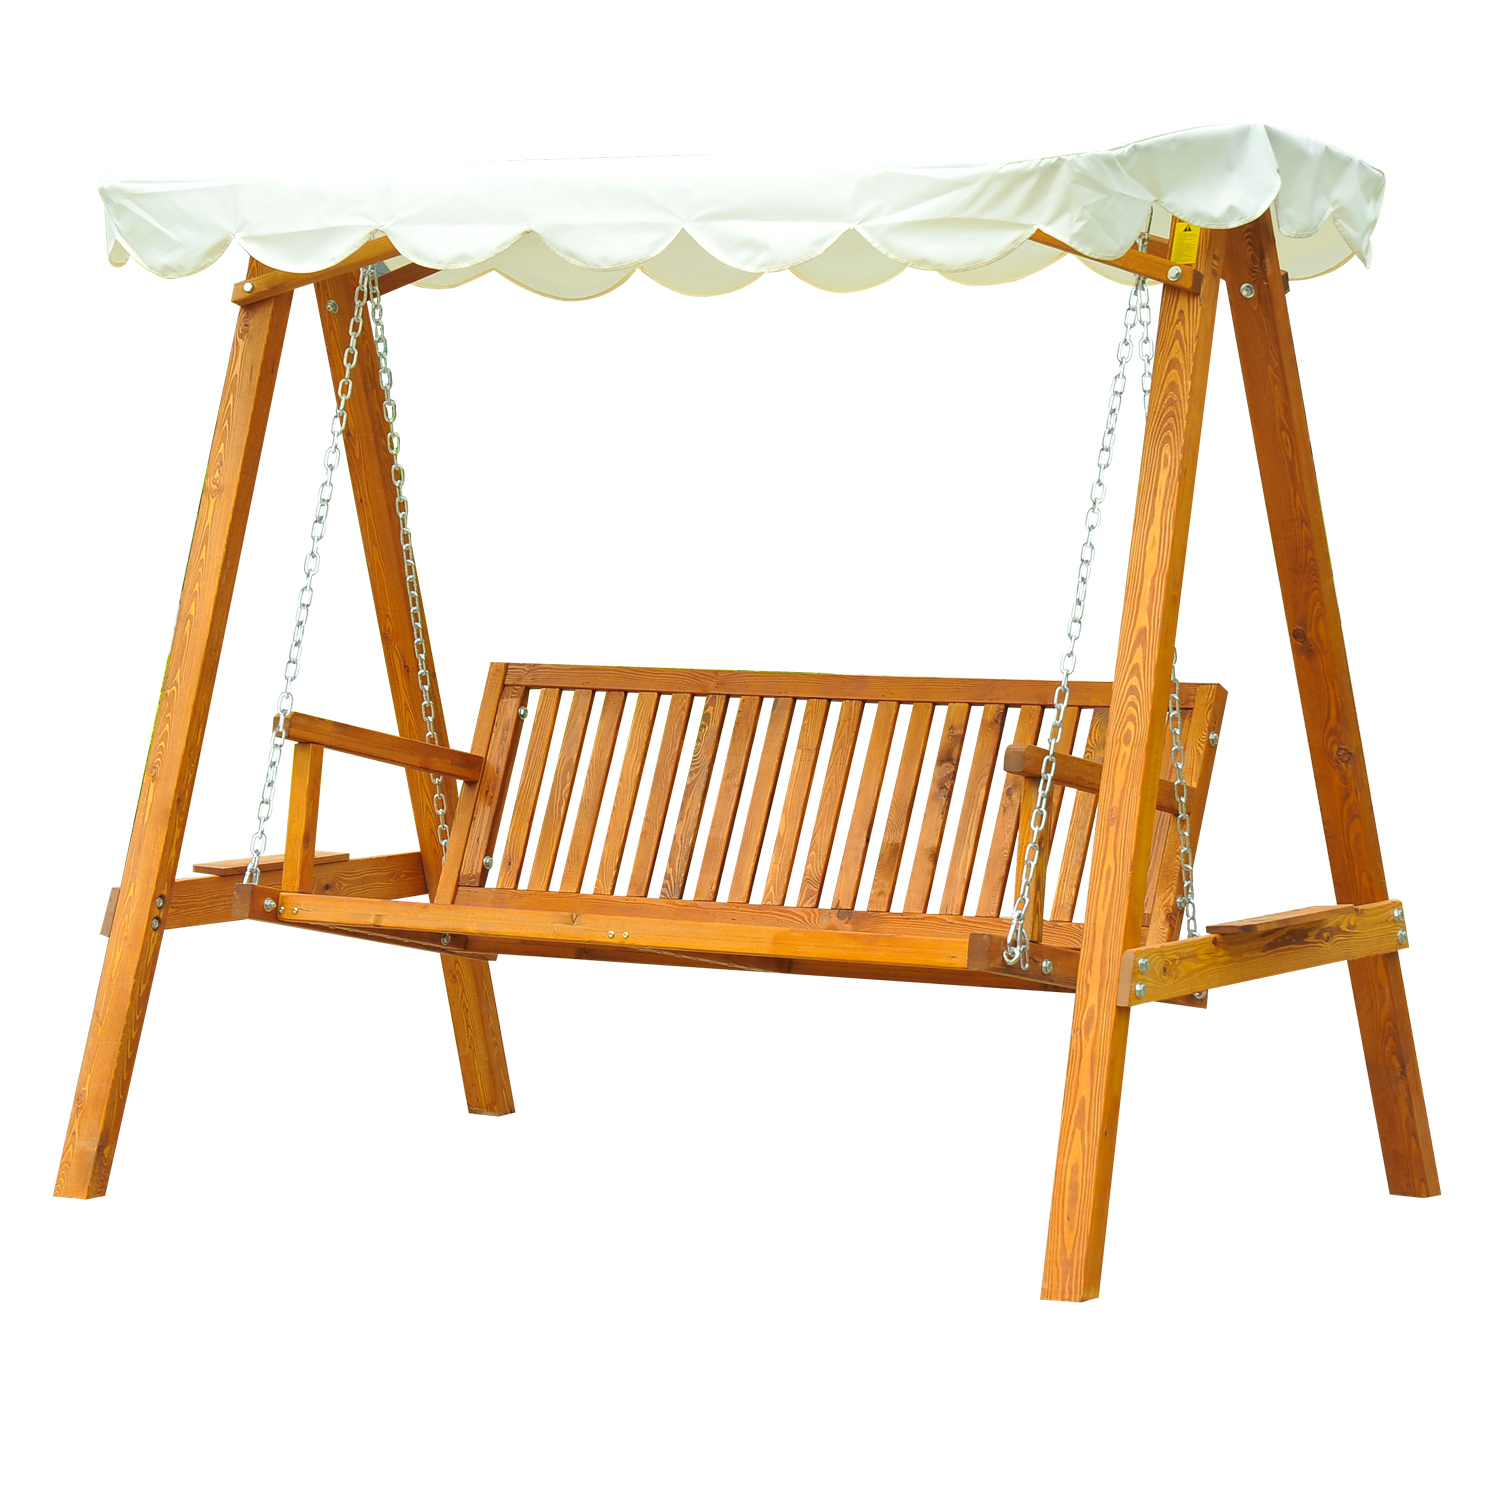 Outsunny Rocking 3 Seater Pine Wood With Sunshield Sun Shade Garden 200x130x185 Cm